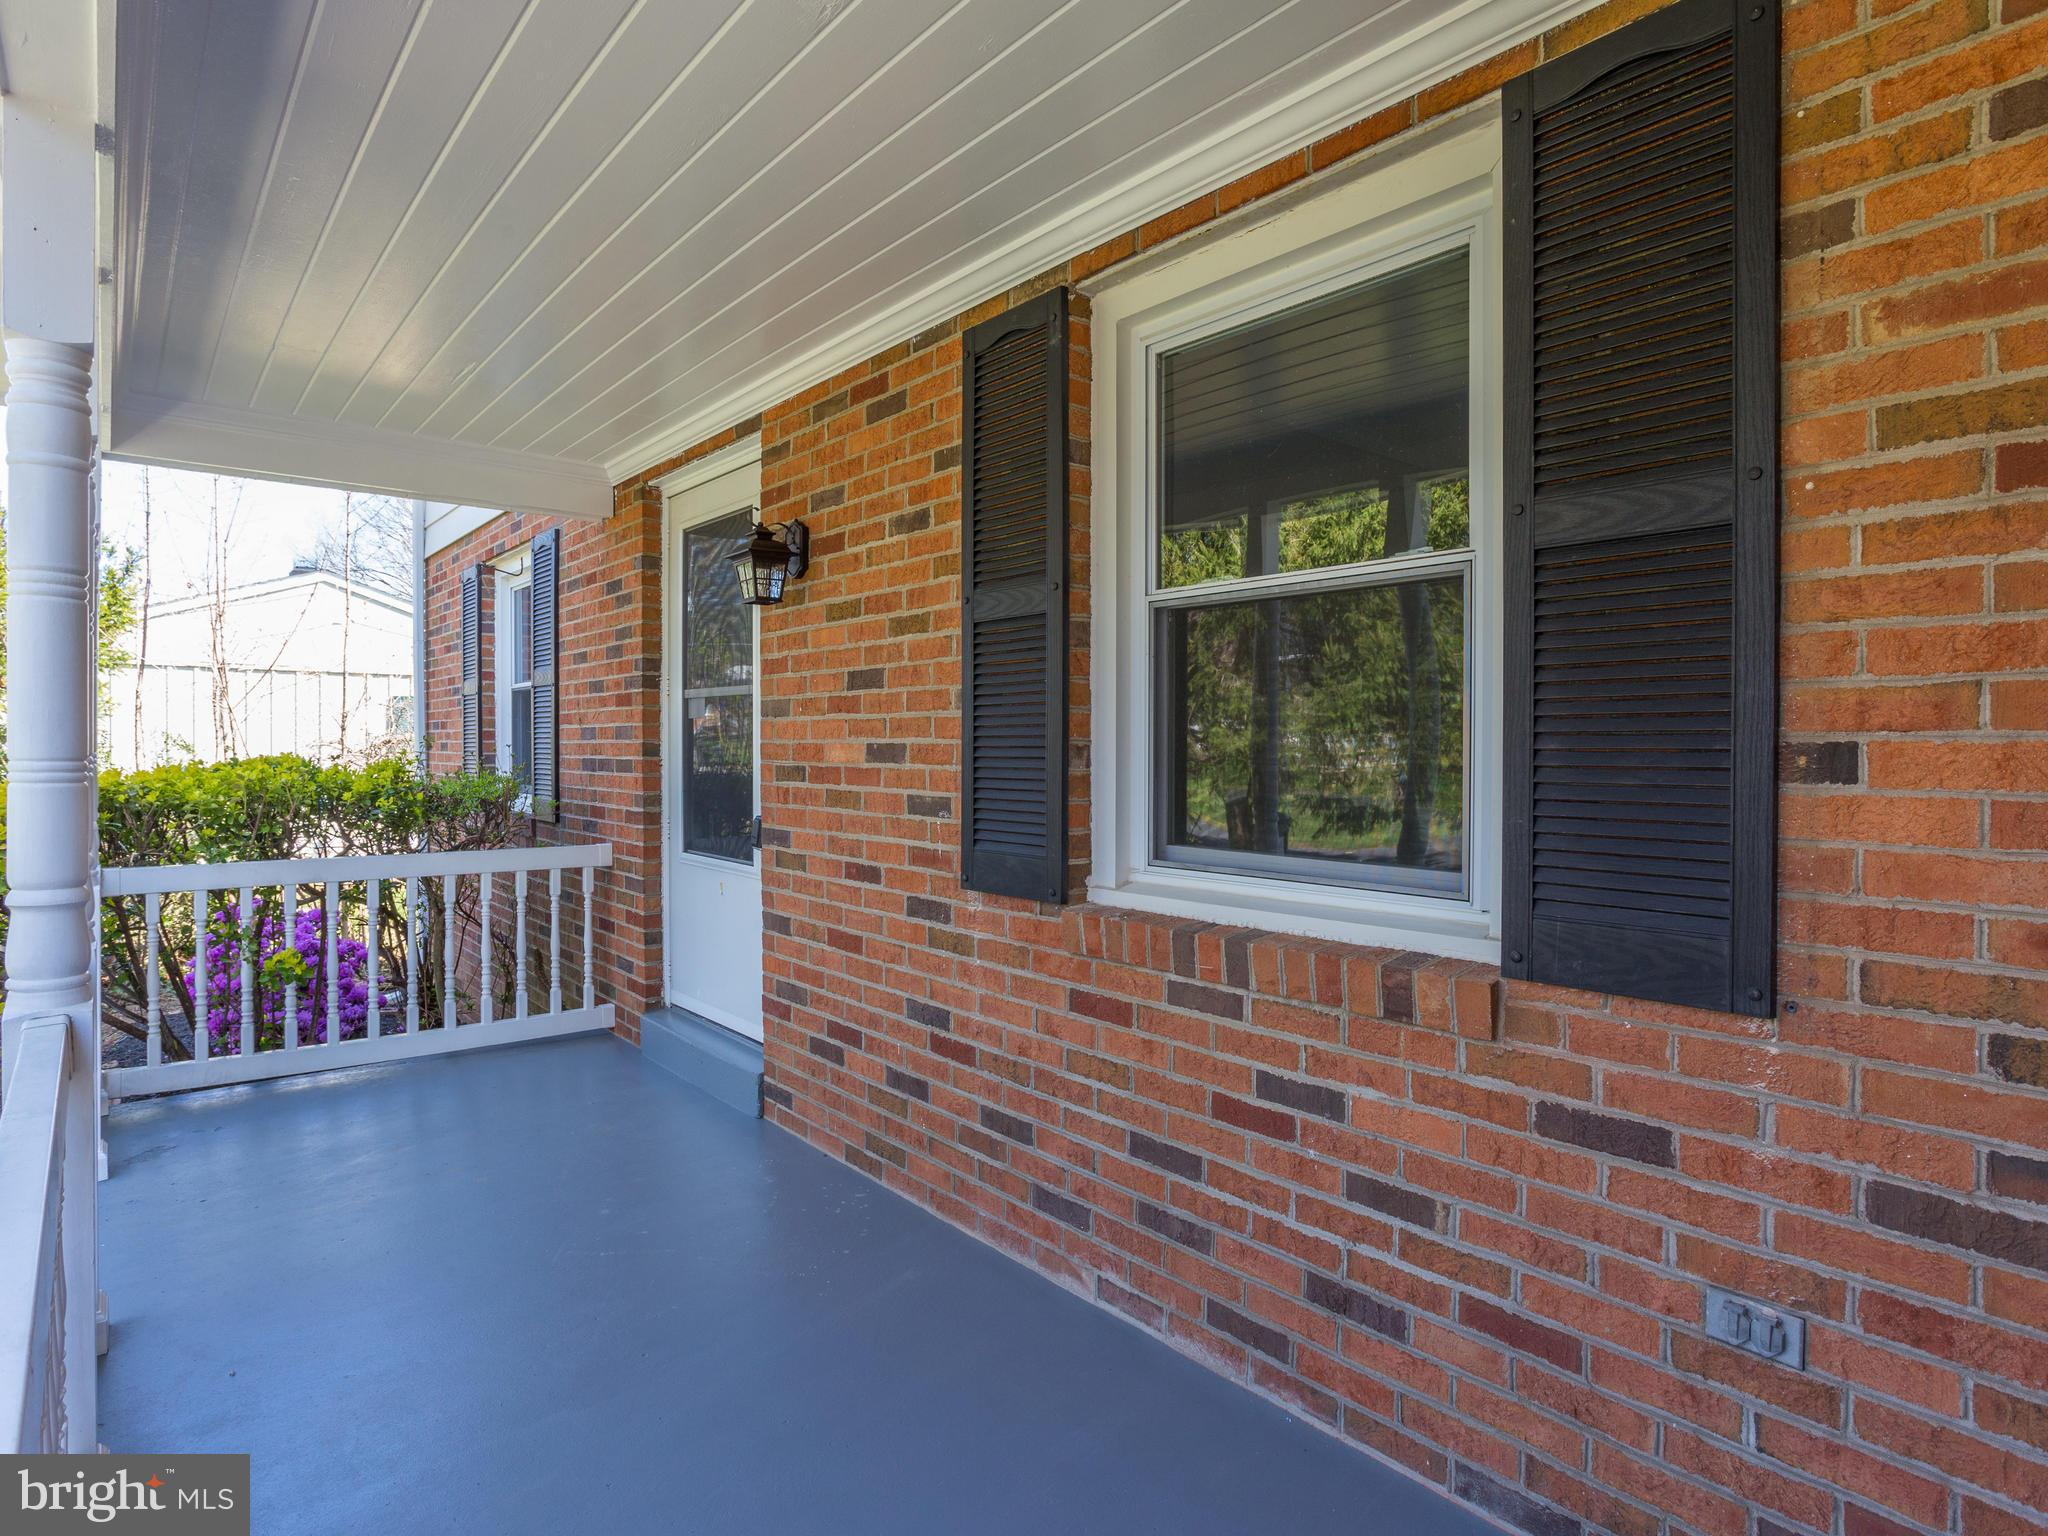 330 26TH STREET S, Purcellville, 20132 - SOLD LISTING, MLS # 1000414934 |  RE/MAX of Reading